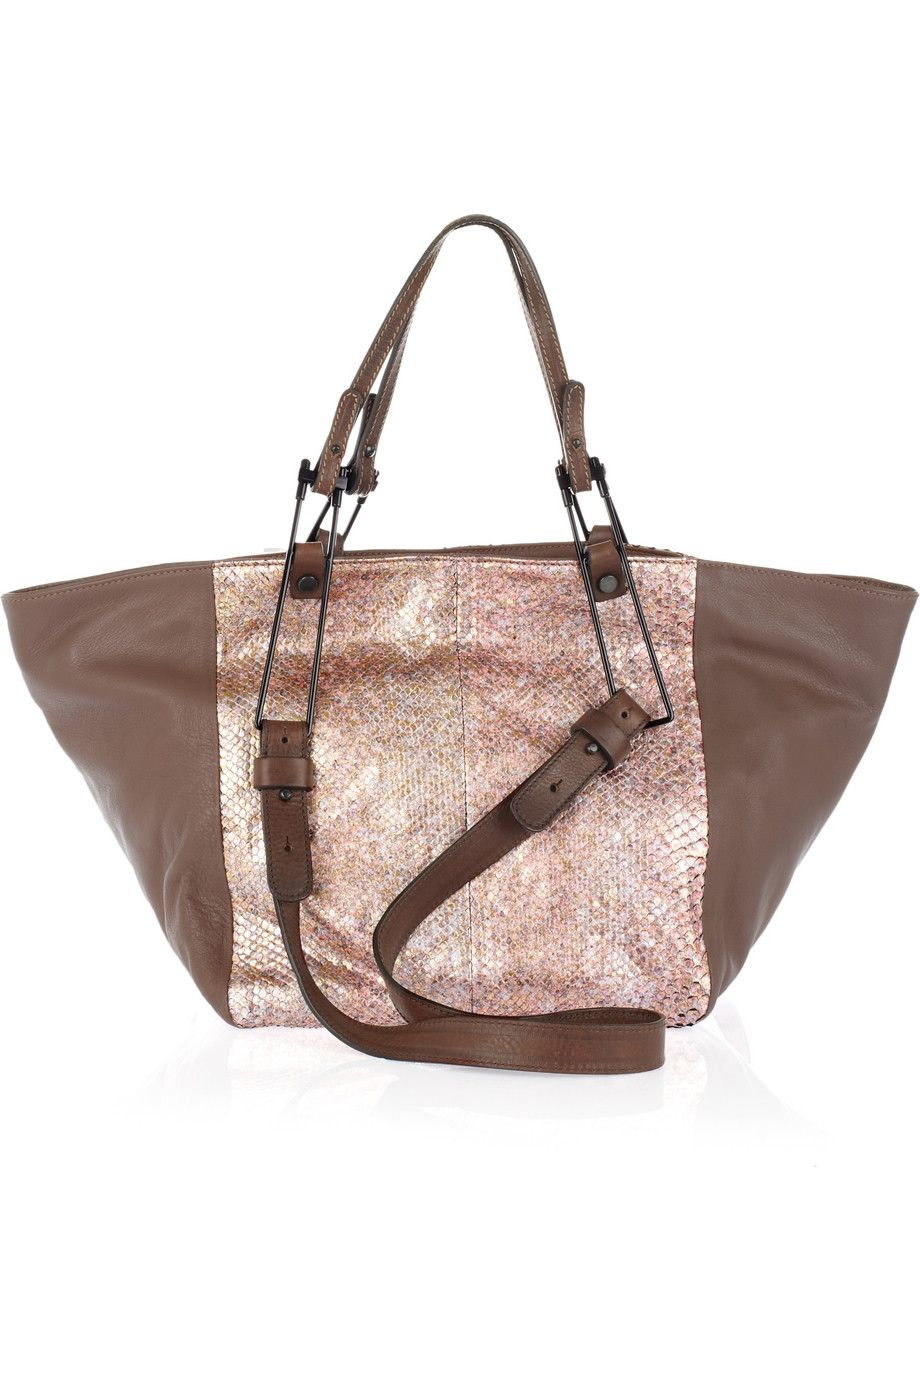 Python and leather tote by Pauric Sweeney